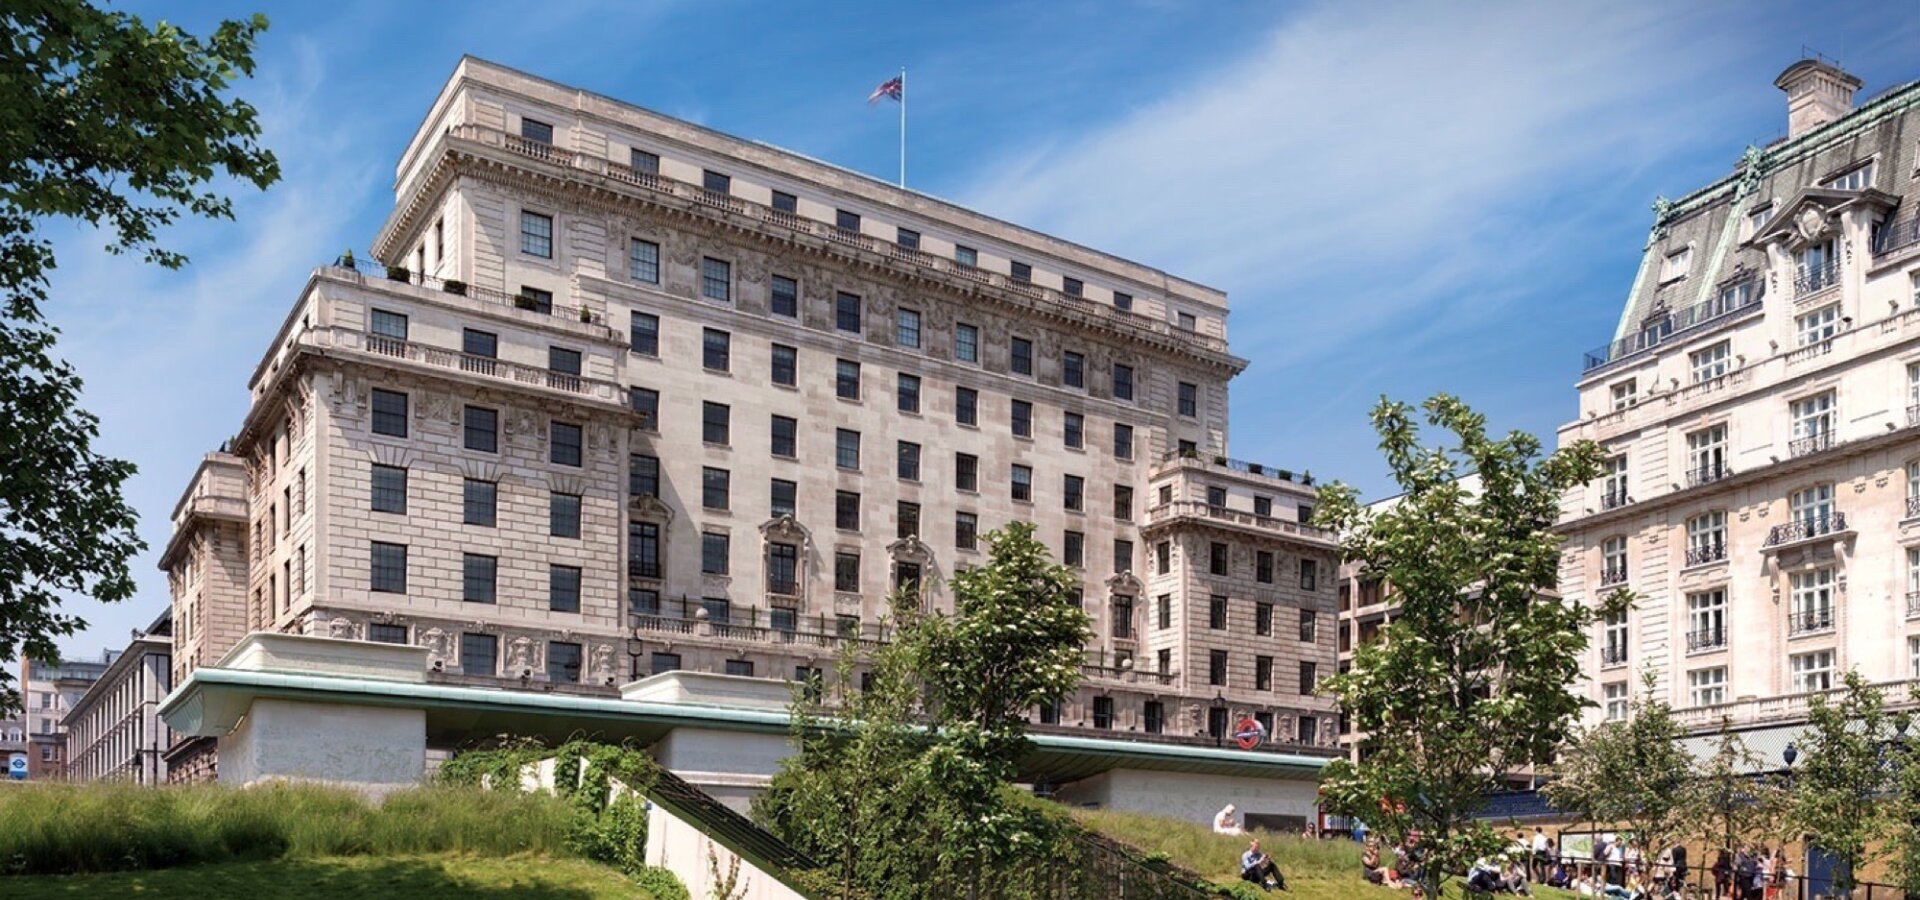 Grafton Advisors create value through the asset management of buildings in central London